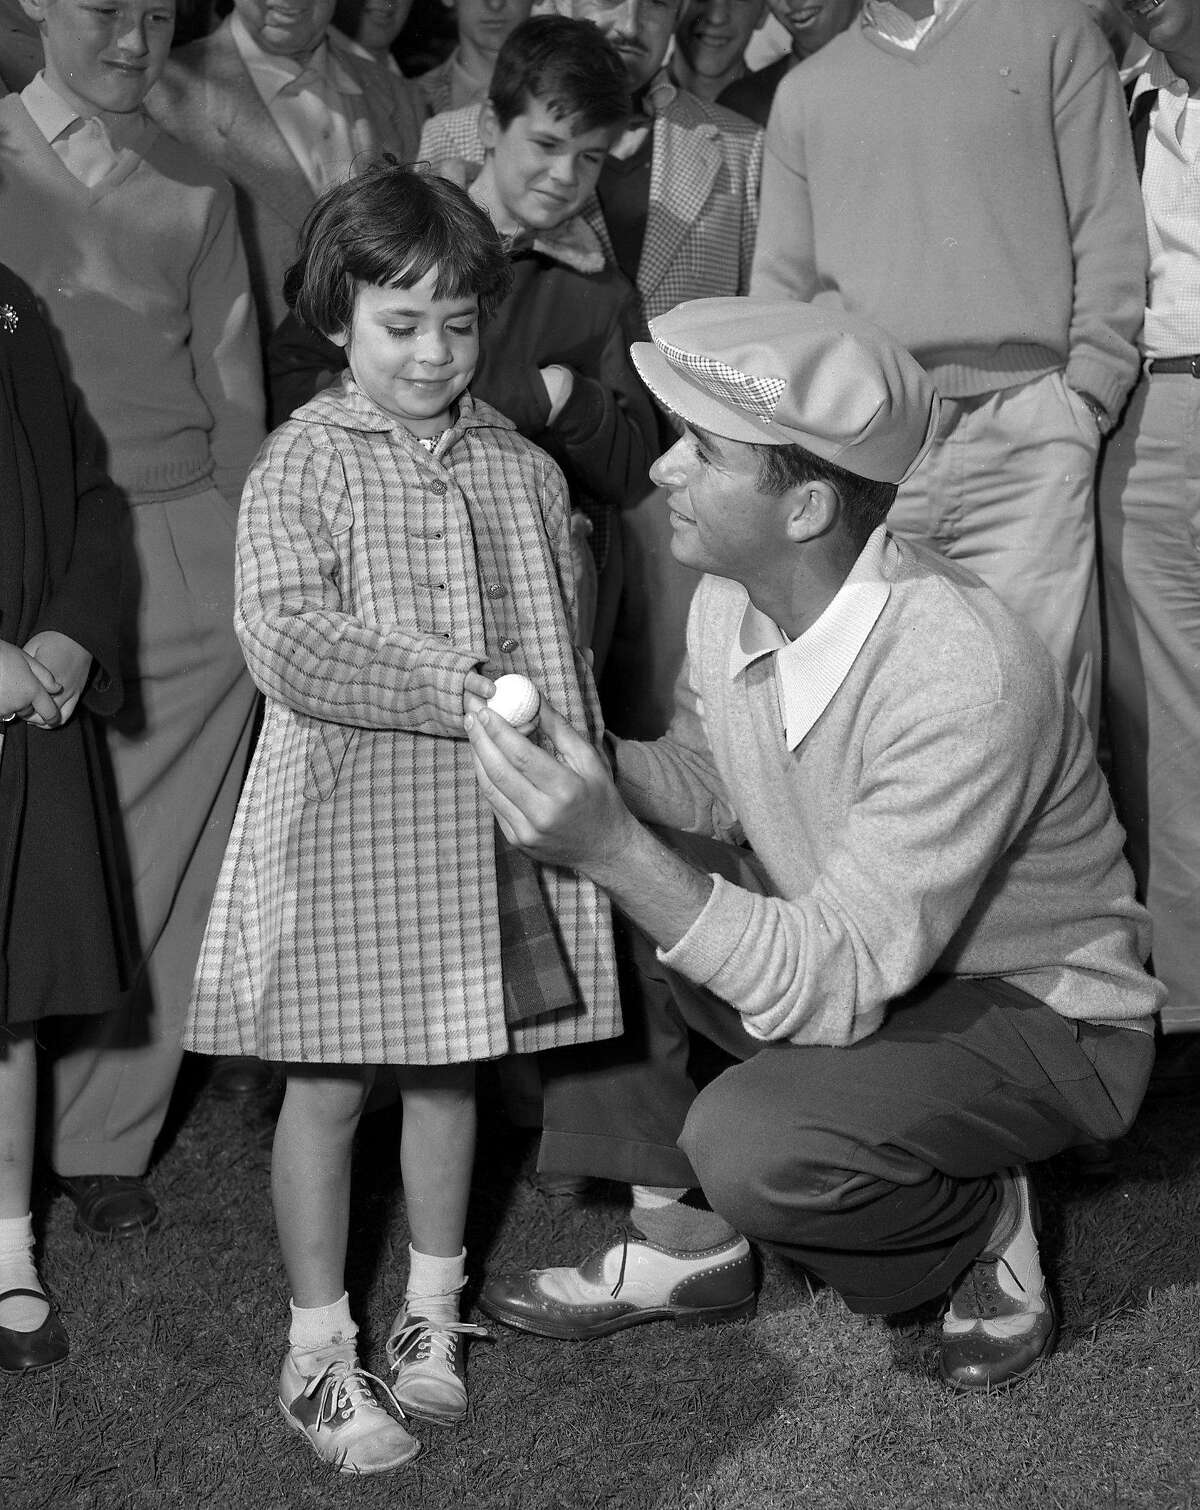 Ken Venturi would beat Art Linhares in the 1953 San Francisco City Golf Championships Venturi would present the winning ball to Maureen Powell ( age 6) who was a big fan April 1953